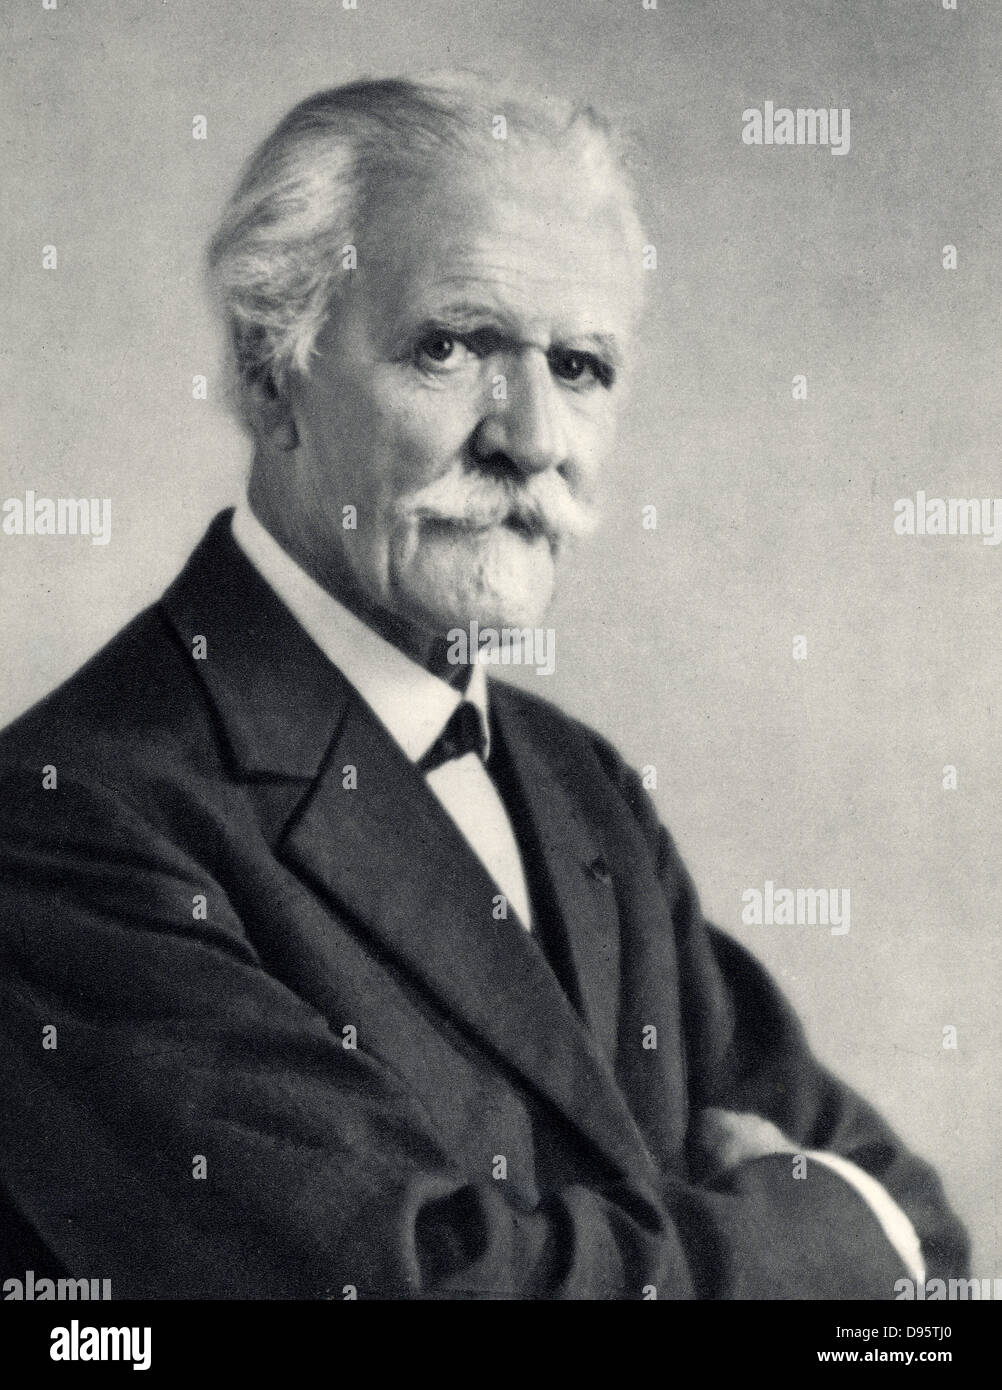 (Paul Marie Theodore) Vincent D'Indy (1851-1931) French composer.  From a photograph. - Stock Image